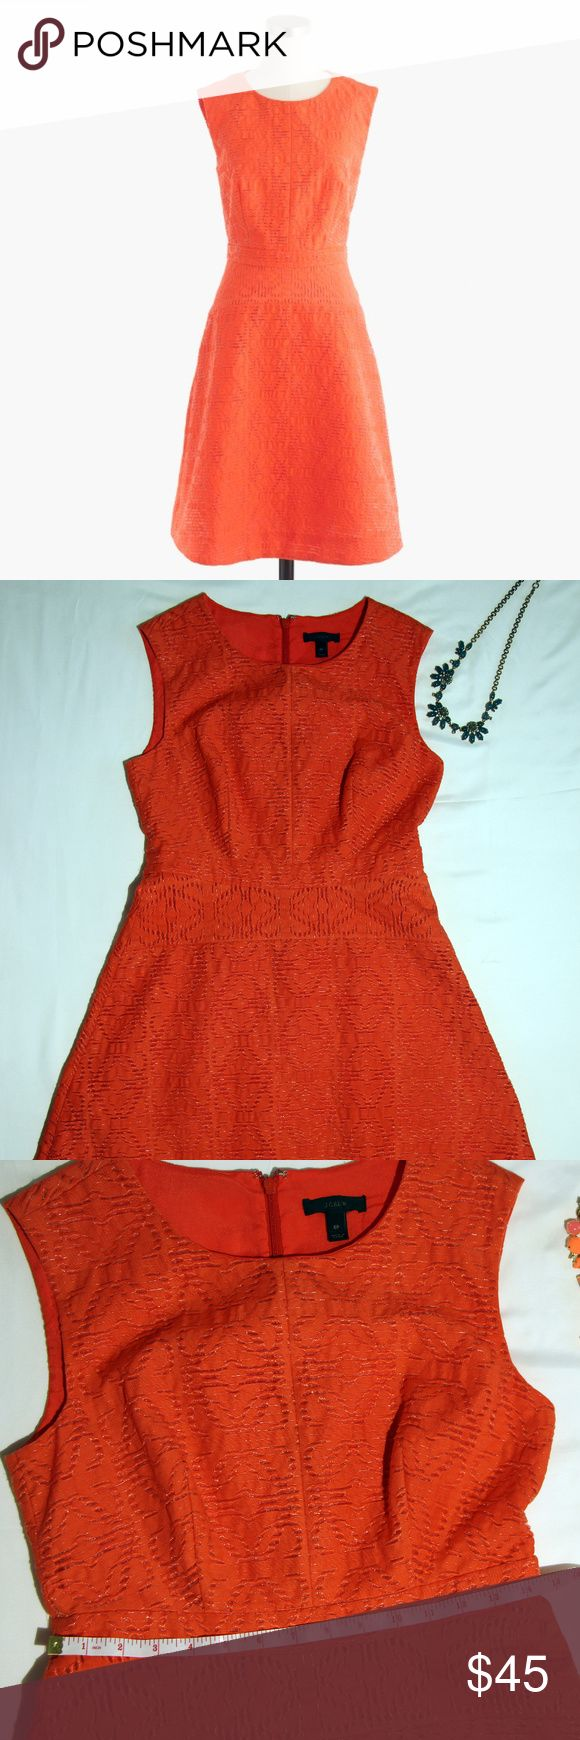 J.Crew Petite 6 eyelet jacquard orange dress An easy sleeveless sundress made from eyelet jacquard in a unique geometric pattern. It transitions from Friday night dinner to Saturday morning in the park with a few strategic footwear decisions.      -Pre-loved, in very good condition.     -The original J.Crew picture shows the real color.      -Cotton/nylon.     -Bra keeps.     -Back zip.     -Lined.     -Machine wash. J. Crew Dresses